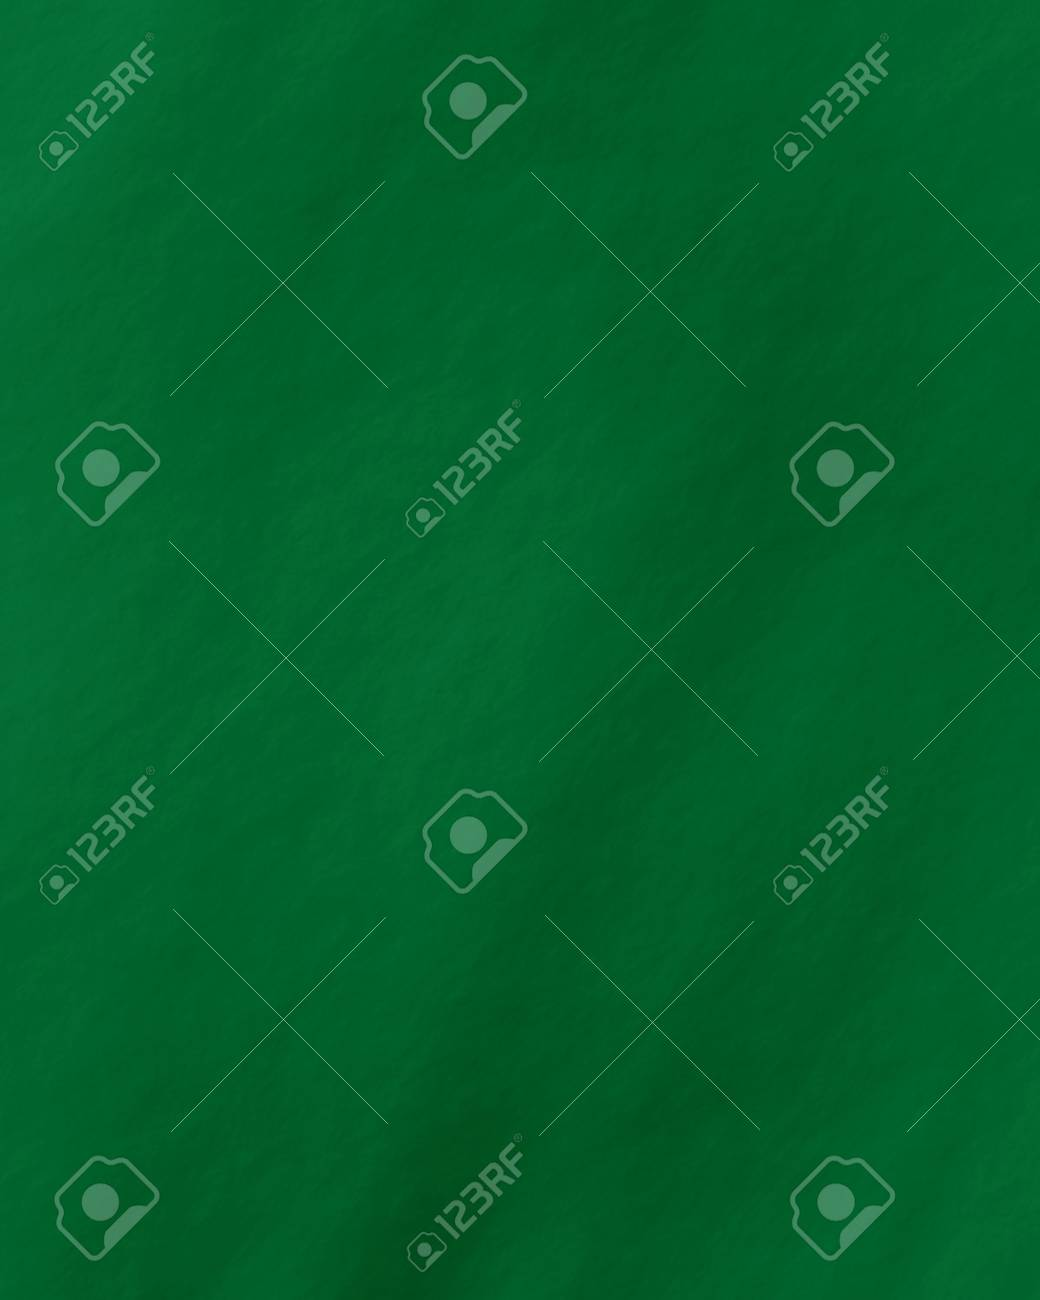 Green texture with darker shades and soft highlights Stock Photo - 18101943